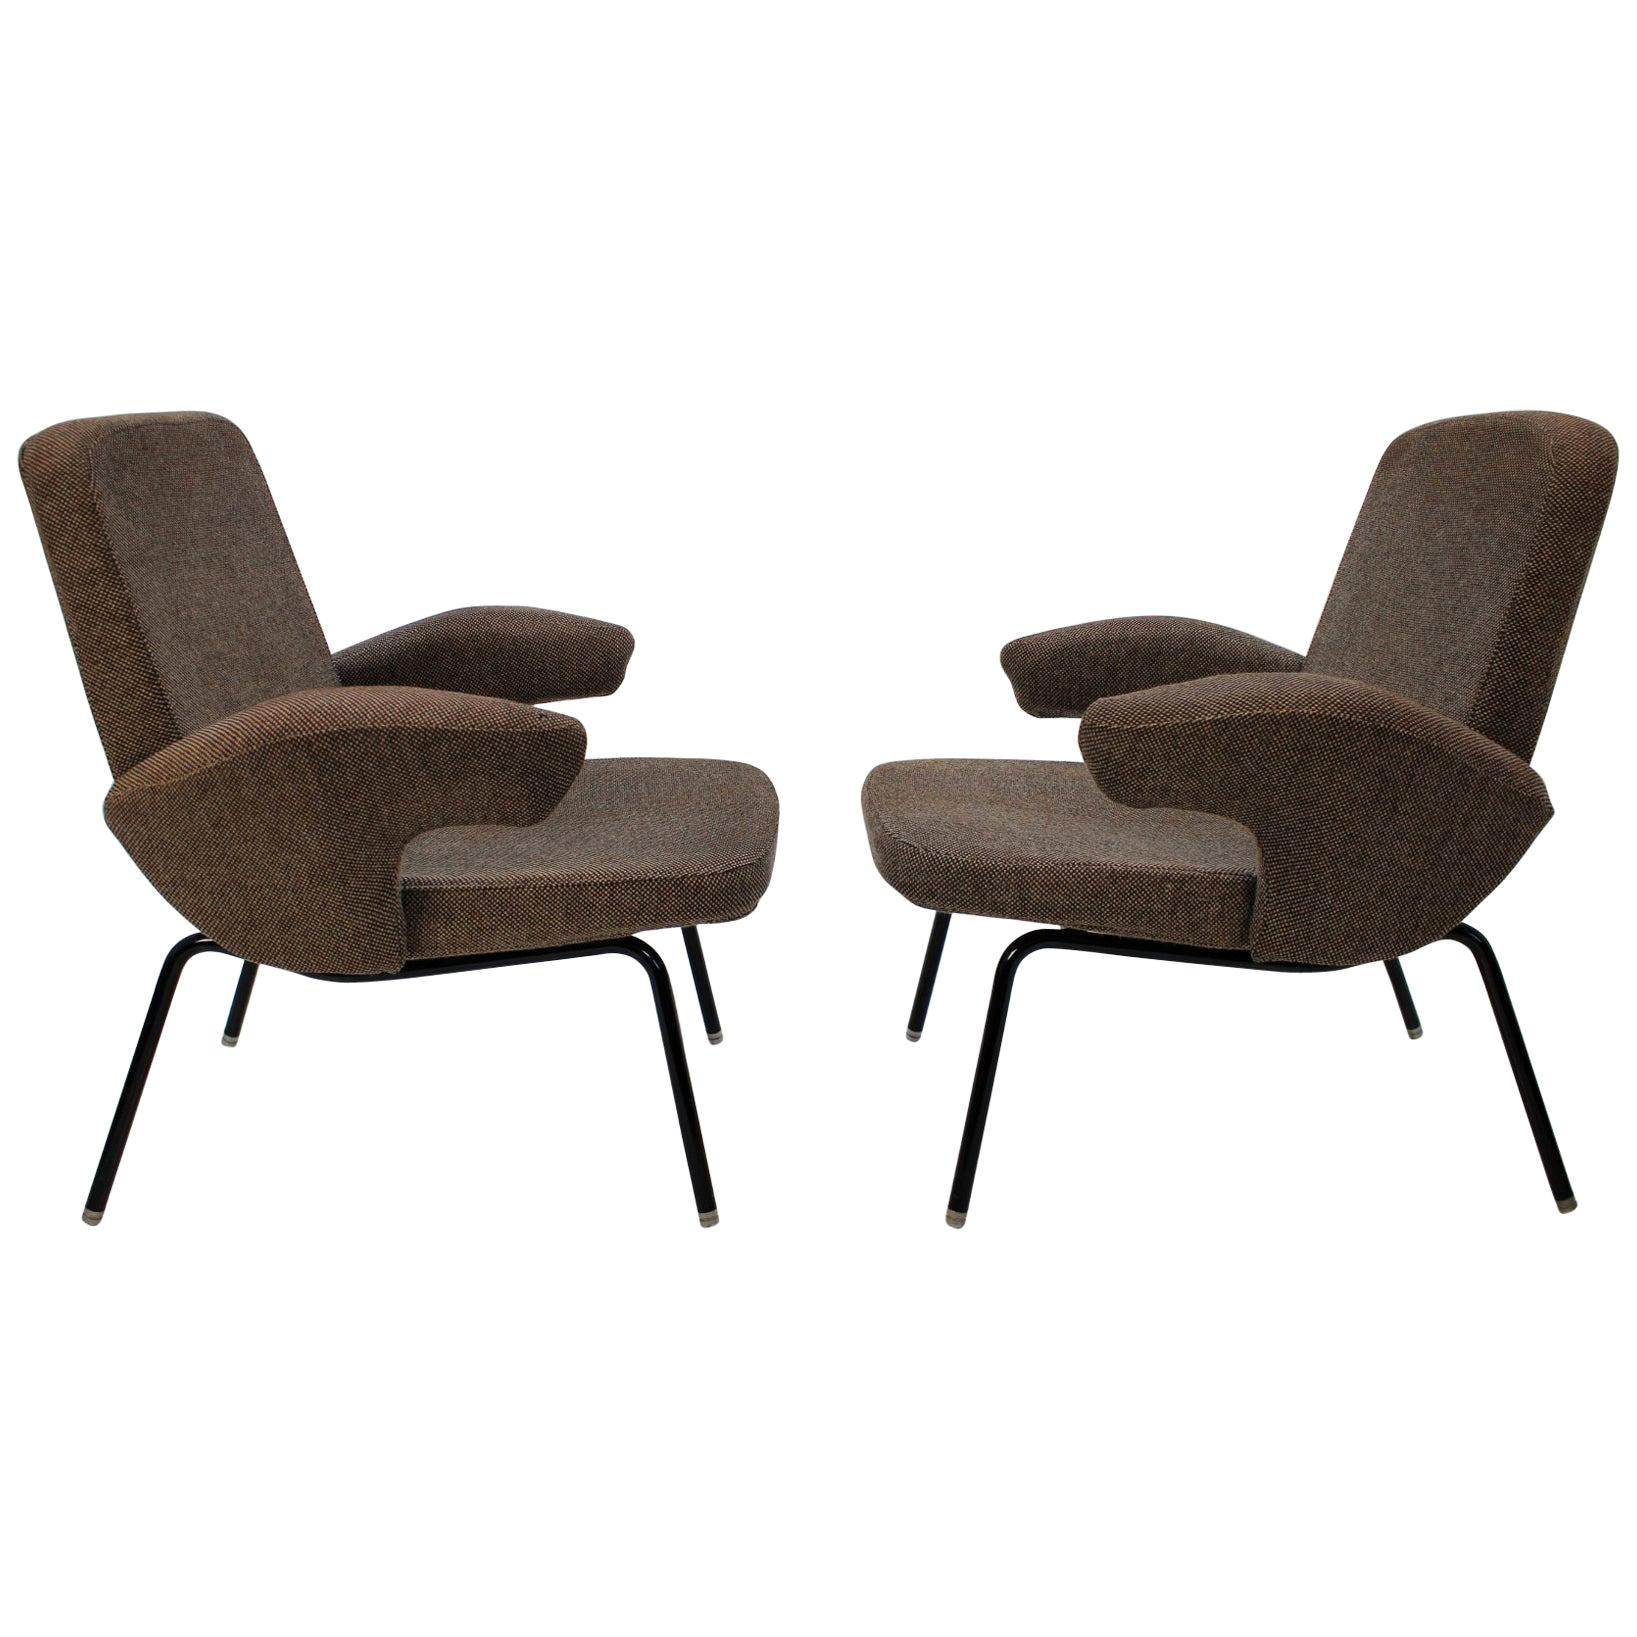 Armchairs by Alan Fuchs, Set of Two, 1961